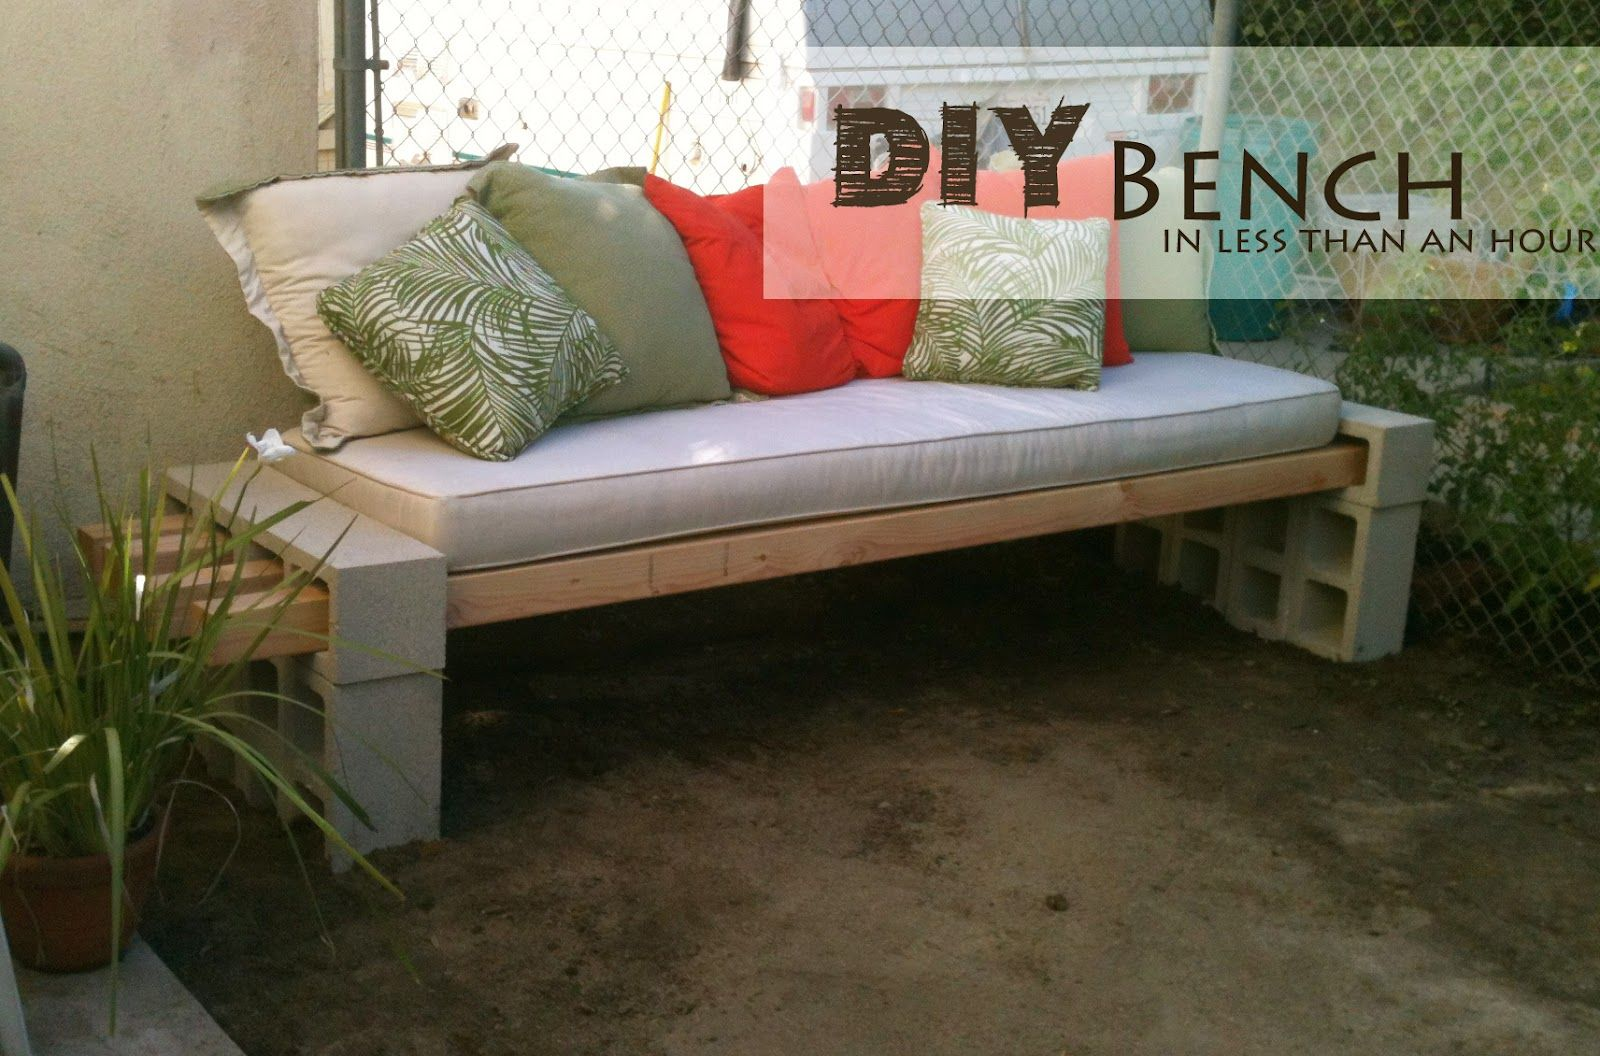 diy patio chairs teal wingback chair easy furniture projects you should already start planning bench